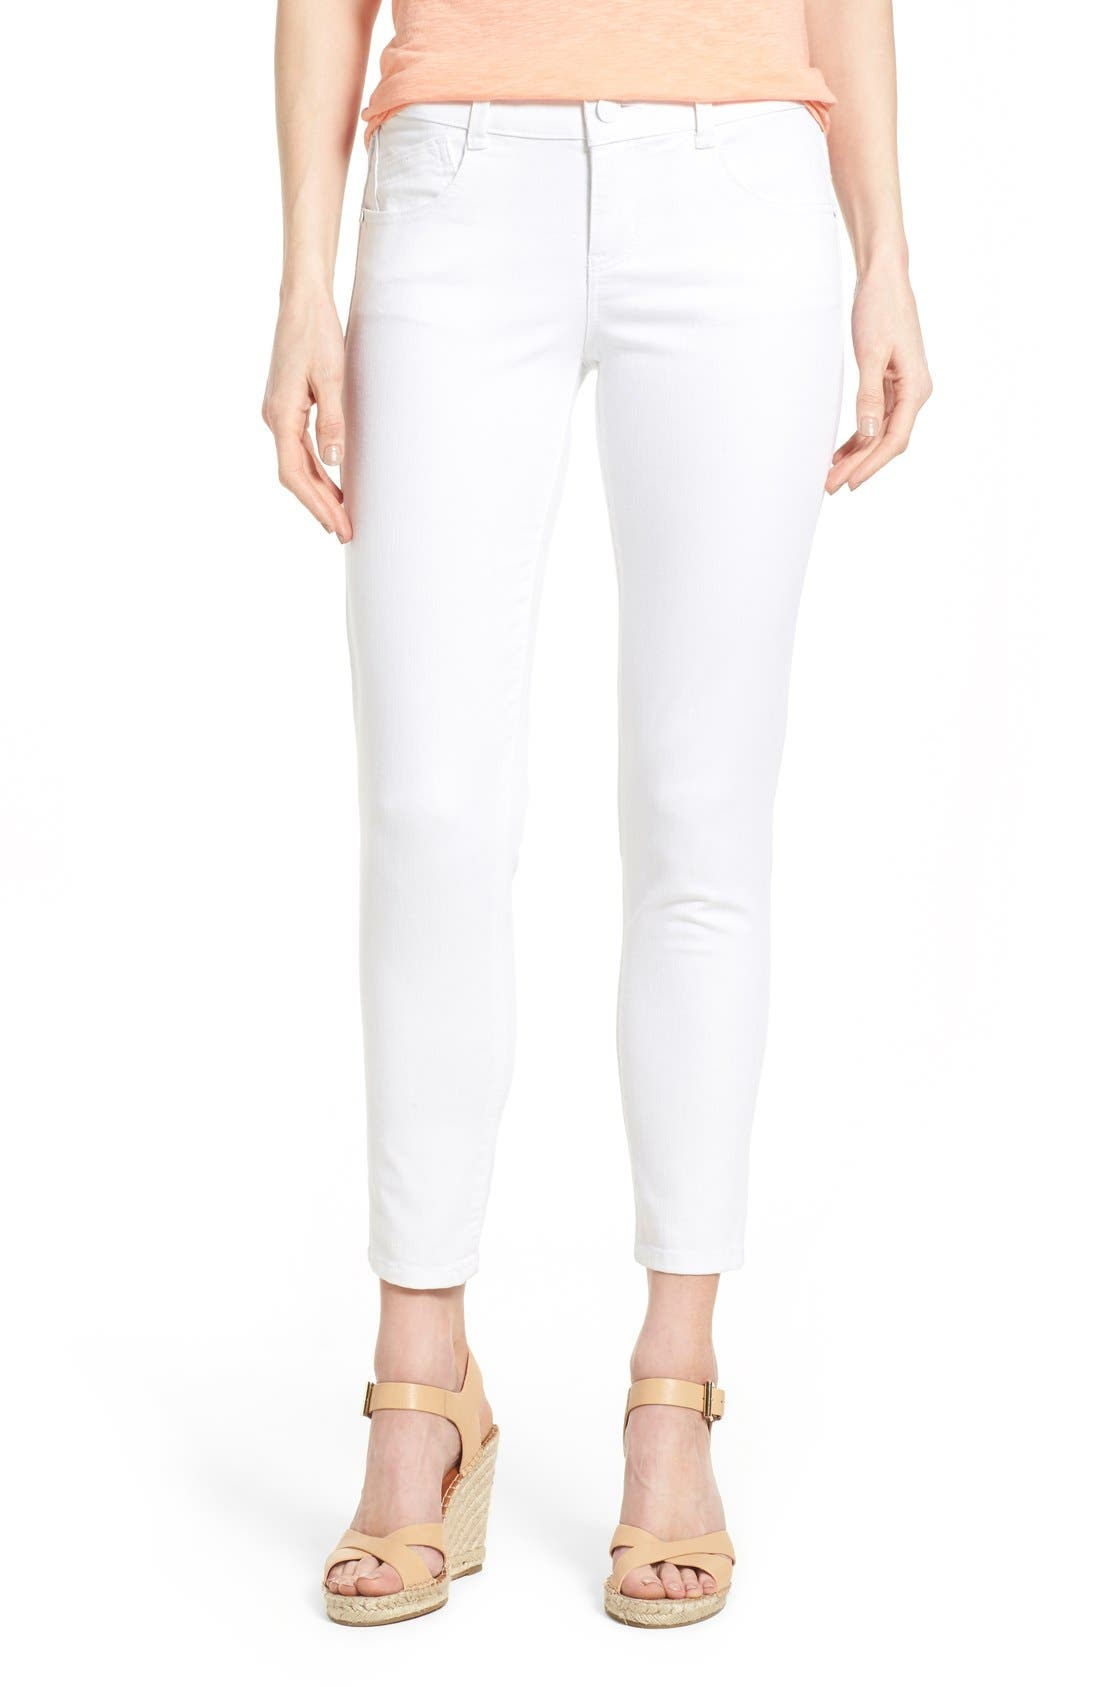 Wit & Wisdom Ab-solution Stretch Ankle Skinny Jeans (Optic White) (Nordstrom Exclusive)